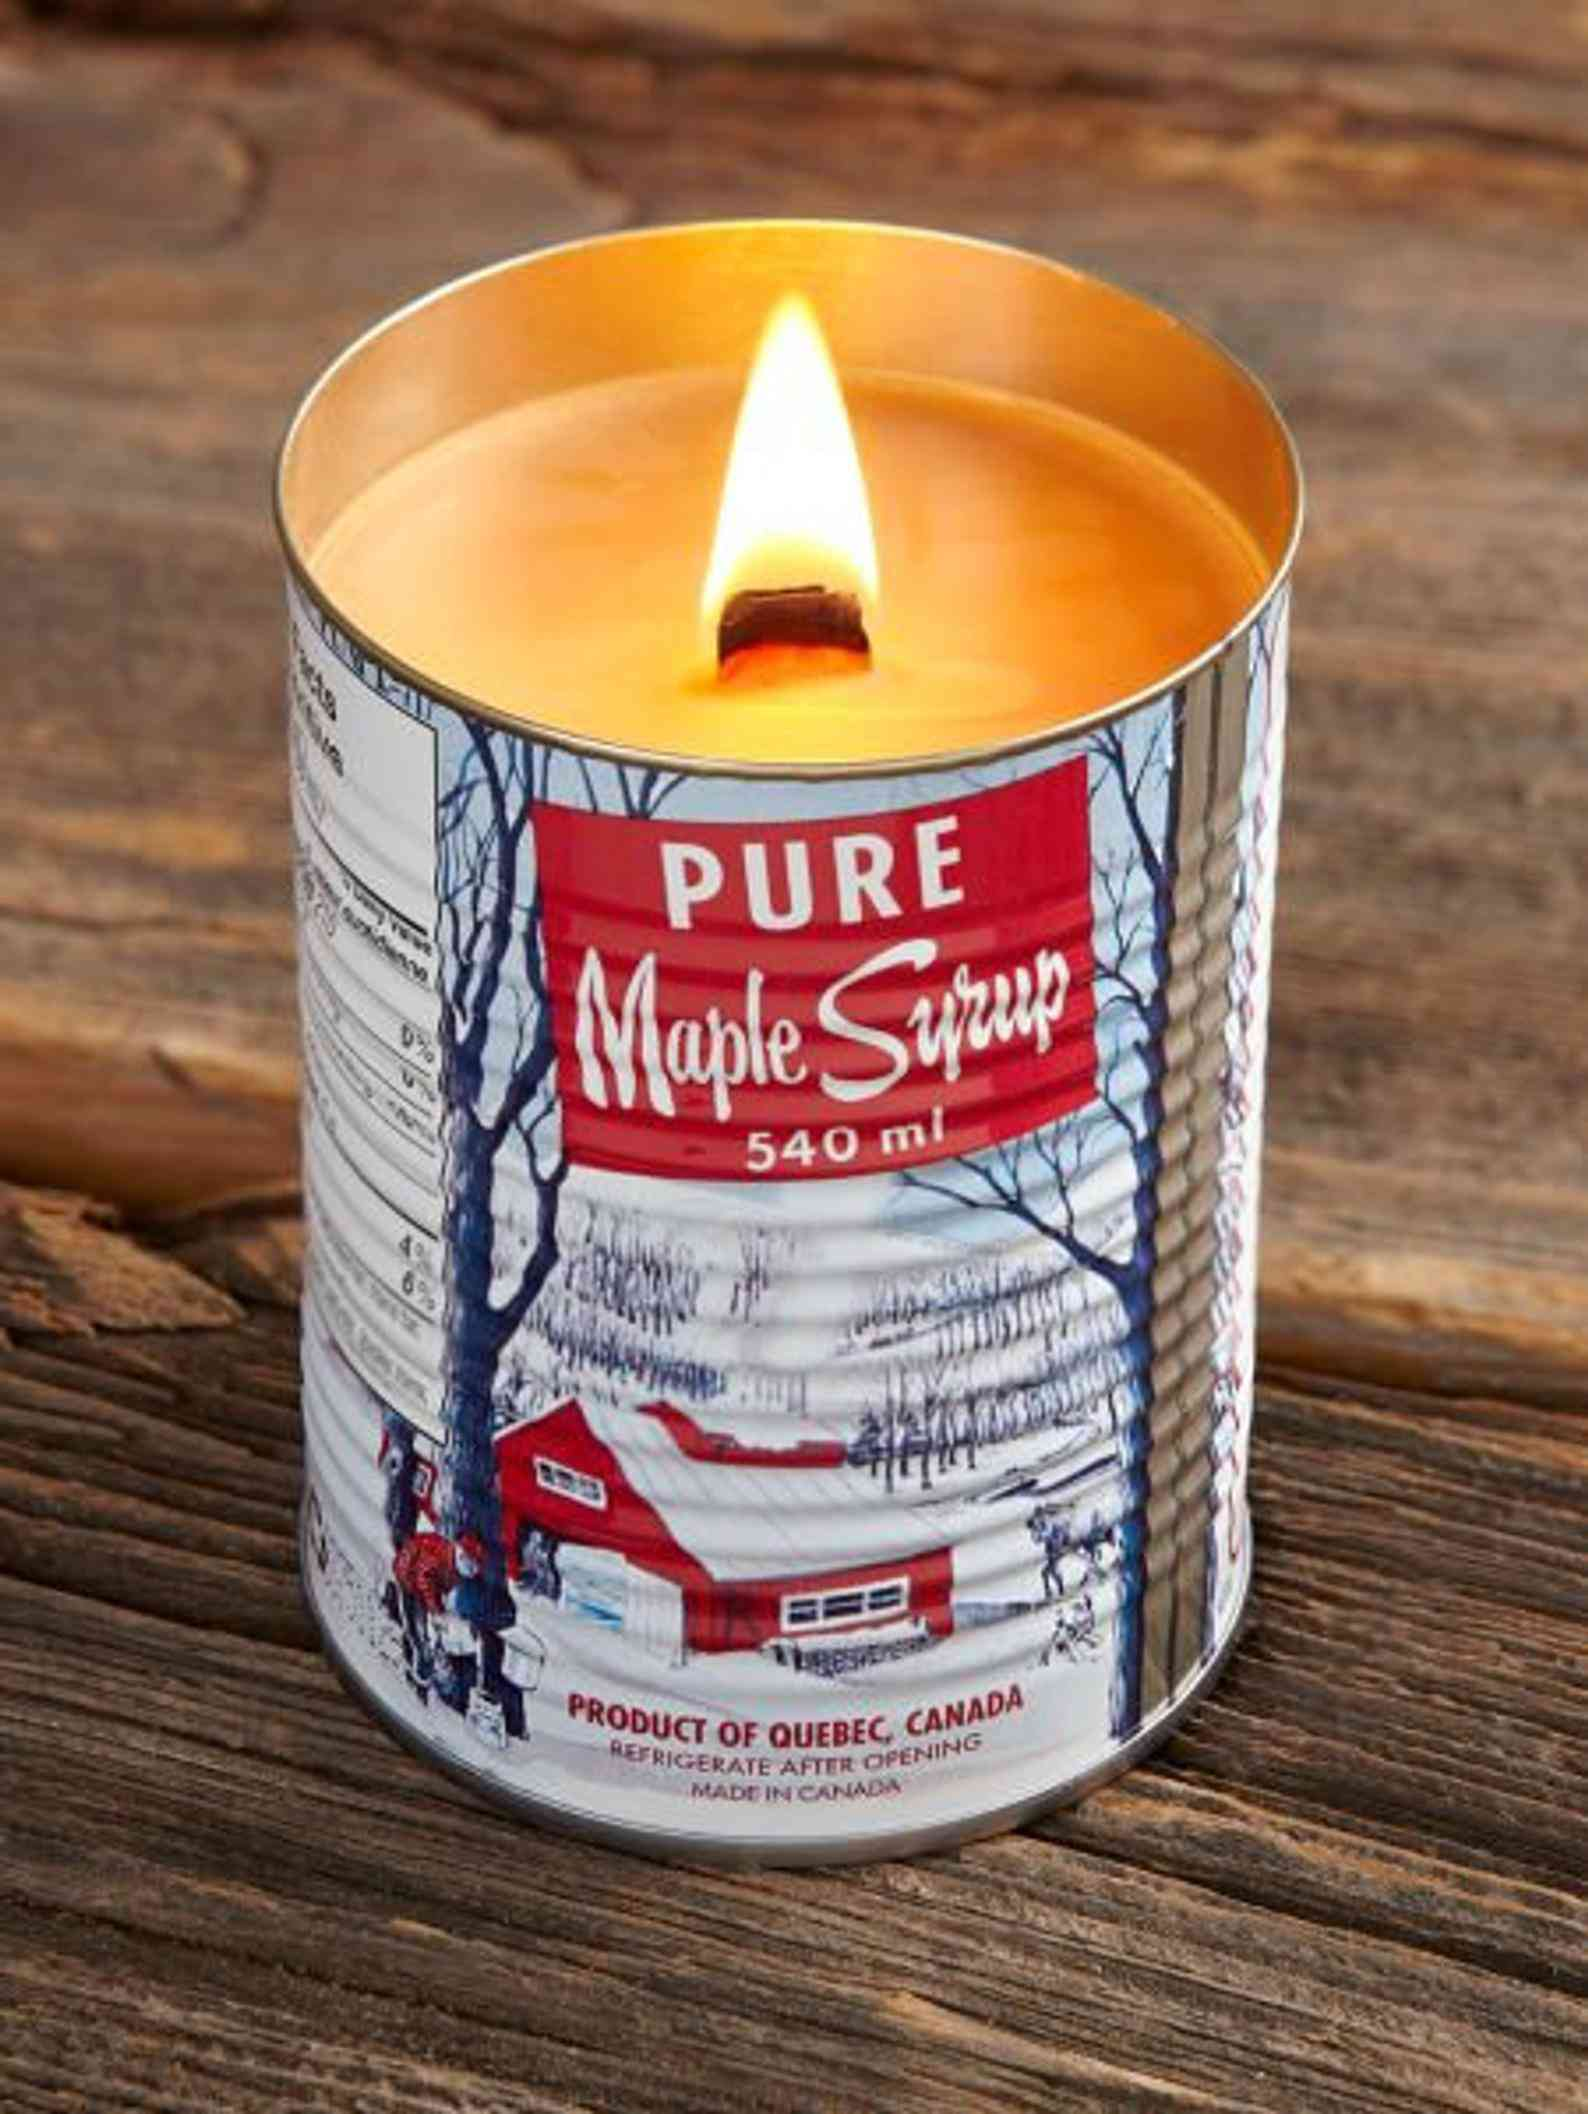 Pure Maple Syrup Scented Candle